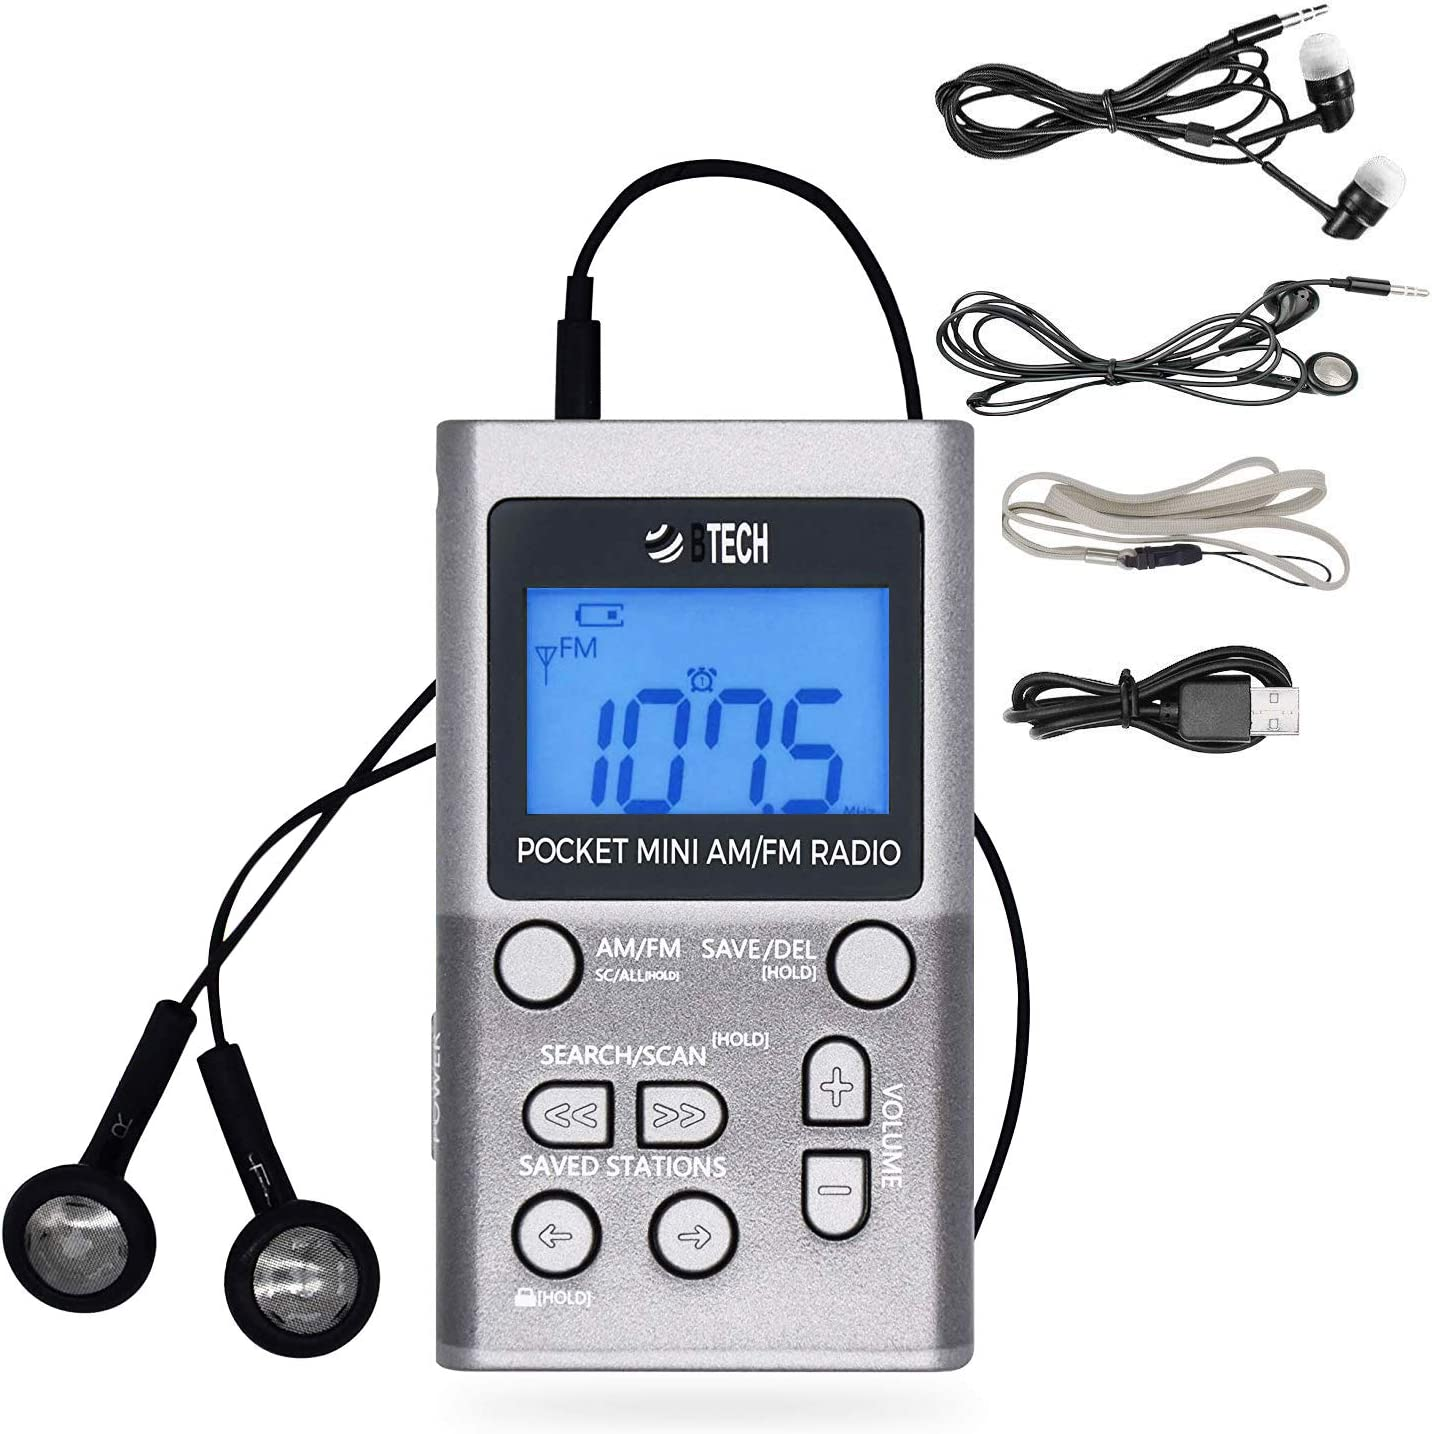 BTECH MPR-AF1 AM FM Personal Radio with Two Types of Stereo Headphones, Clock, Great Reception and Long Battery Life, Mini Pocket Walkman Radio with Headphones (Silver)